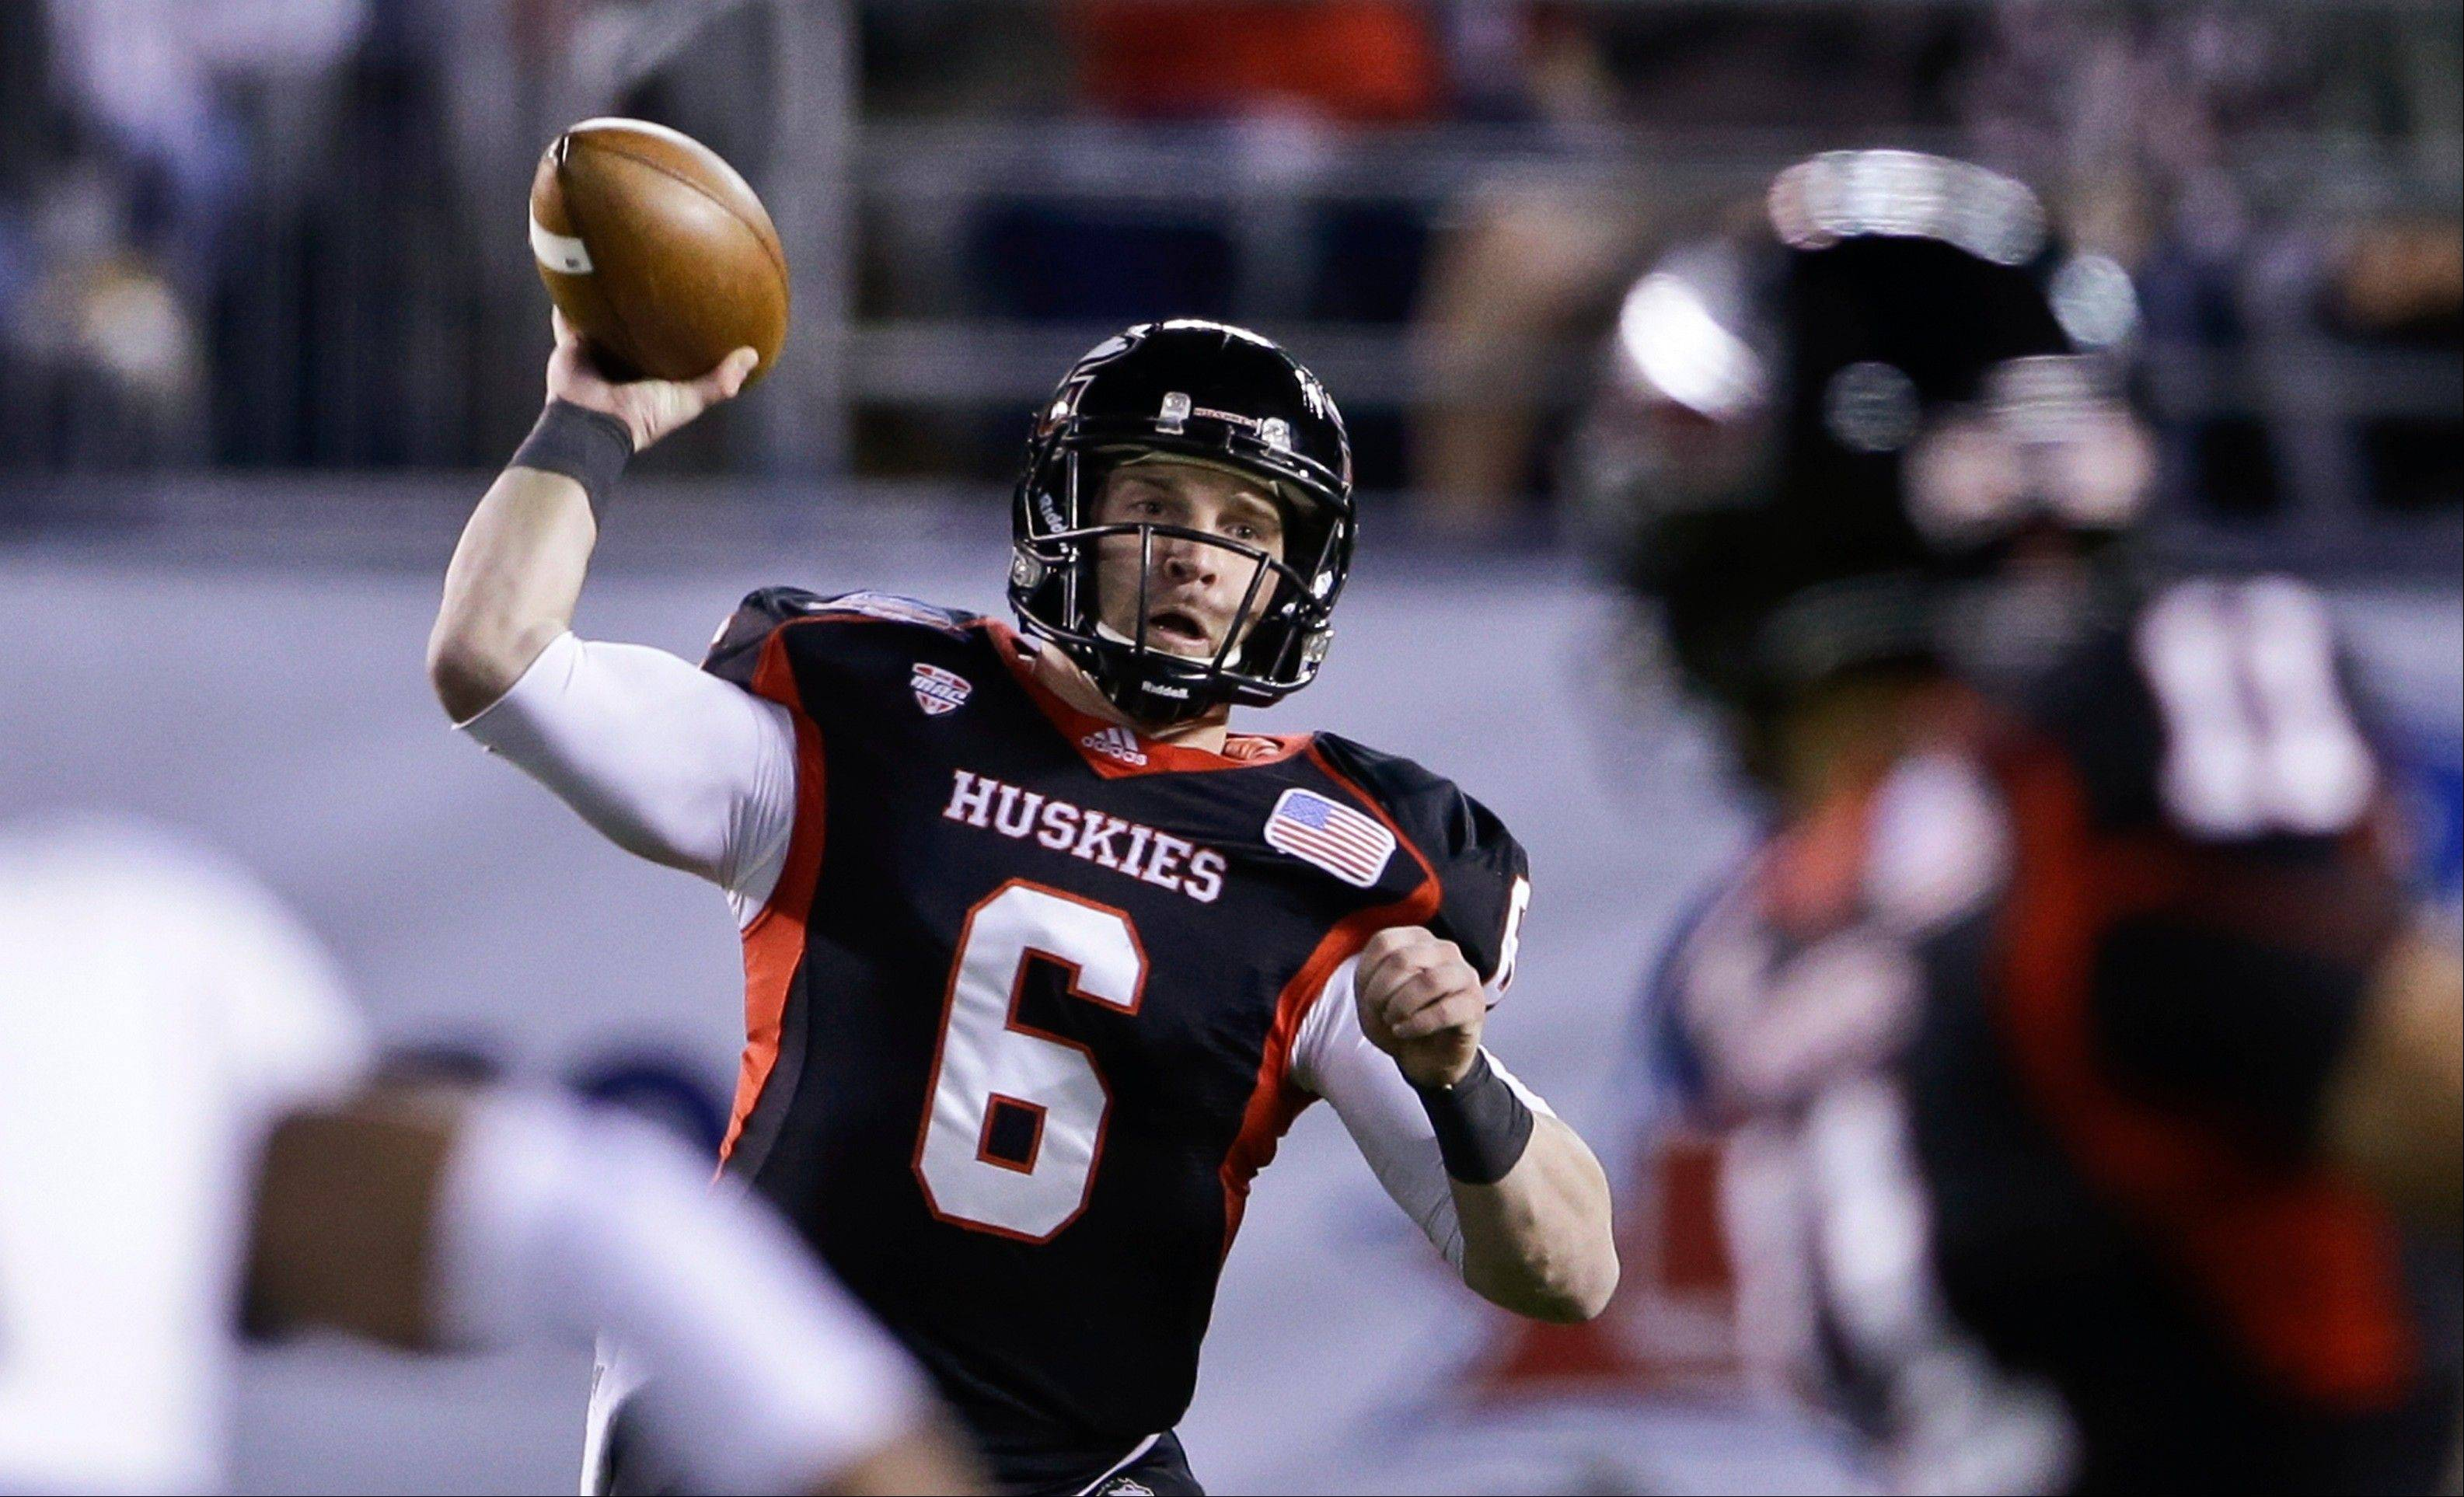 Northern Illinois quarterback Jordan Lynch throws a pass against Utah State during the first half of the Poinsettia Bowl on Thursday in San Diego.